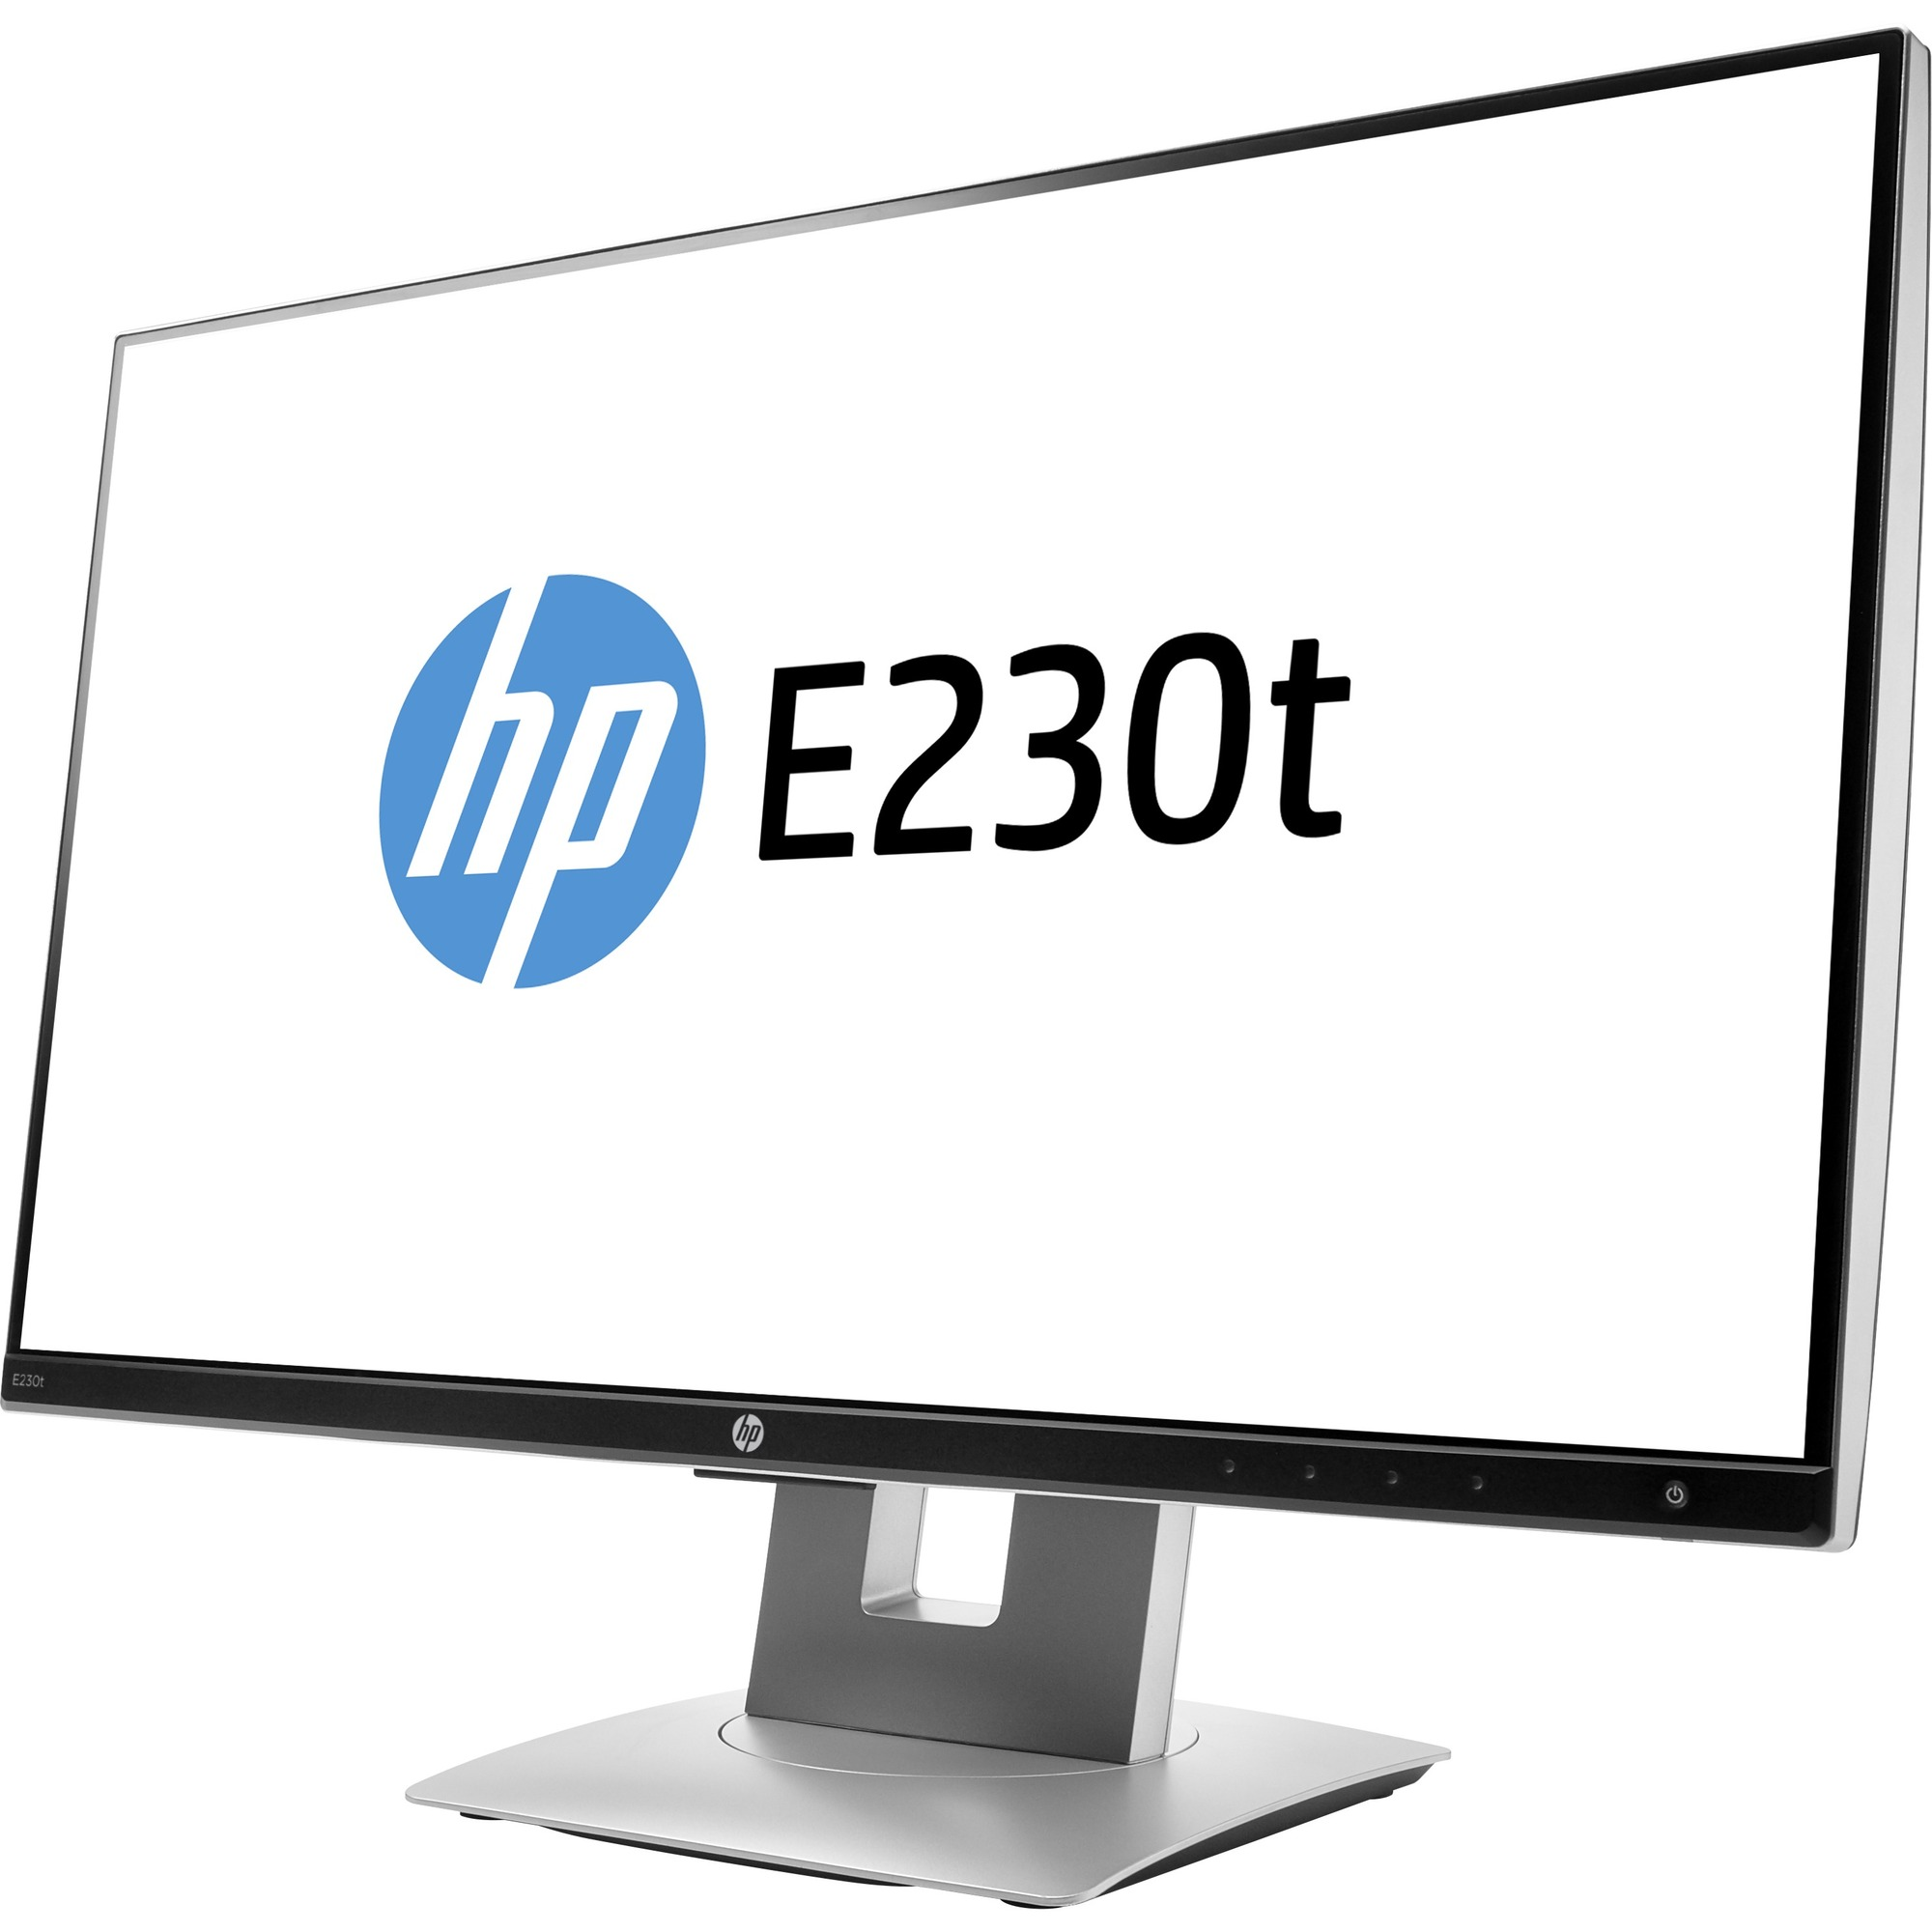 HP Business E230t 58.4 cm 23inch LCD Touchscreen Monitor - 16:9 - 5 ms